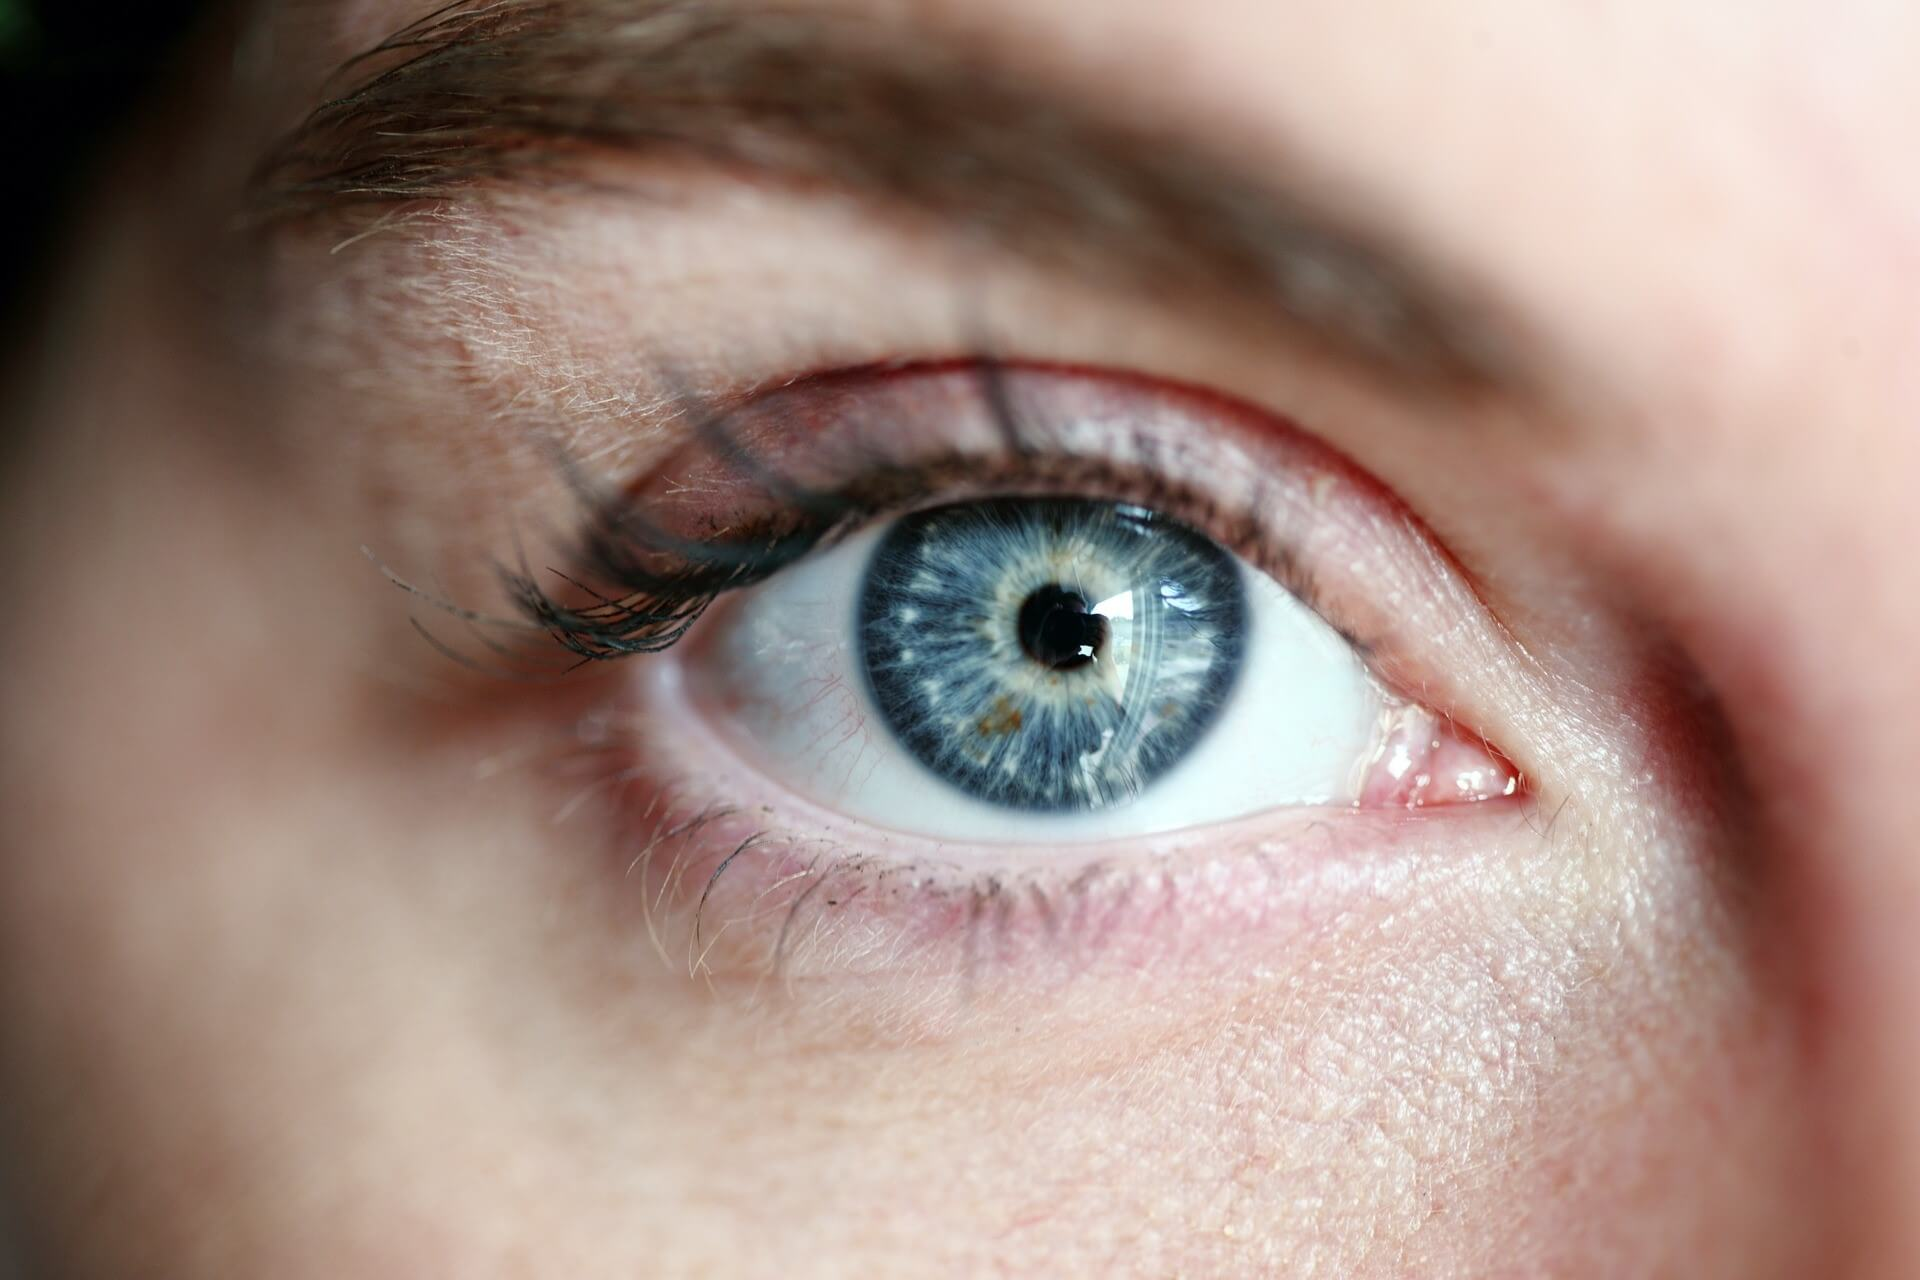 Issues Eye-Lift Surgery Can Solve